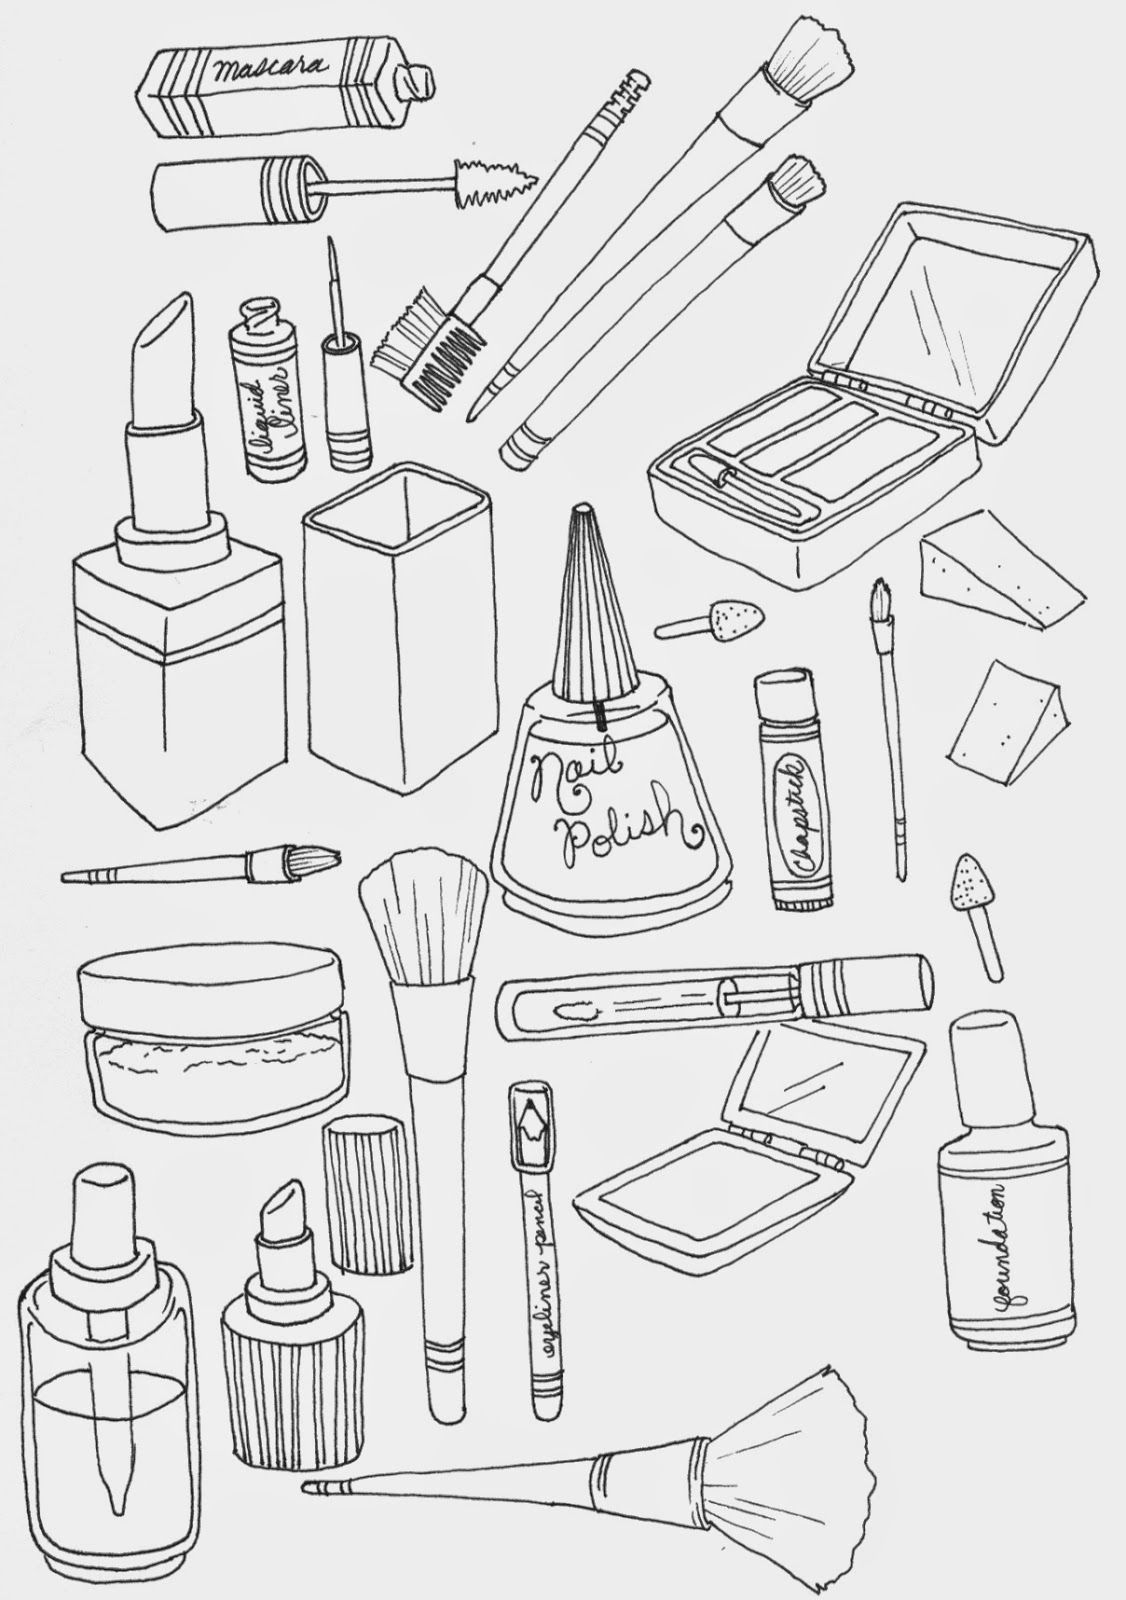 Colouring Pages Makeup Coloring Pages Fresh In Minimalist Free Coloring Kids Jpg 1126 1600 Coloring Books Coloring Book Album Coloring Pages